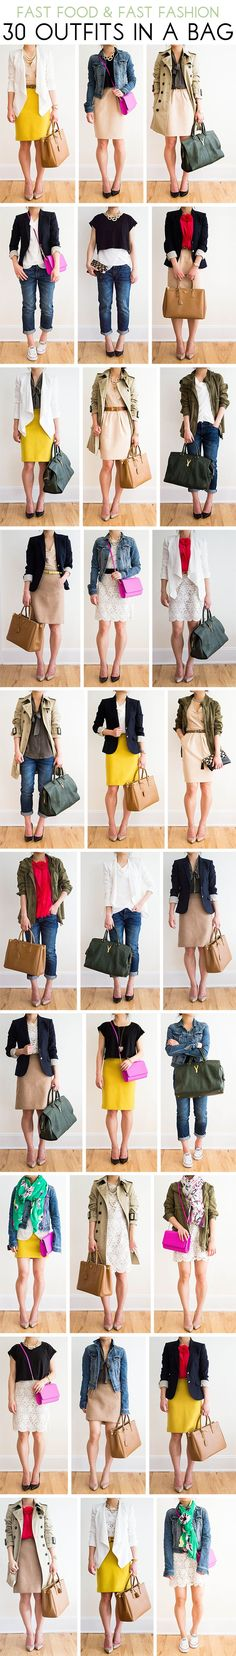 30 Outfits in a Bag: Boyfriend Jeans, pencil skirt, trench, army jacket